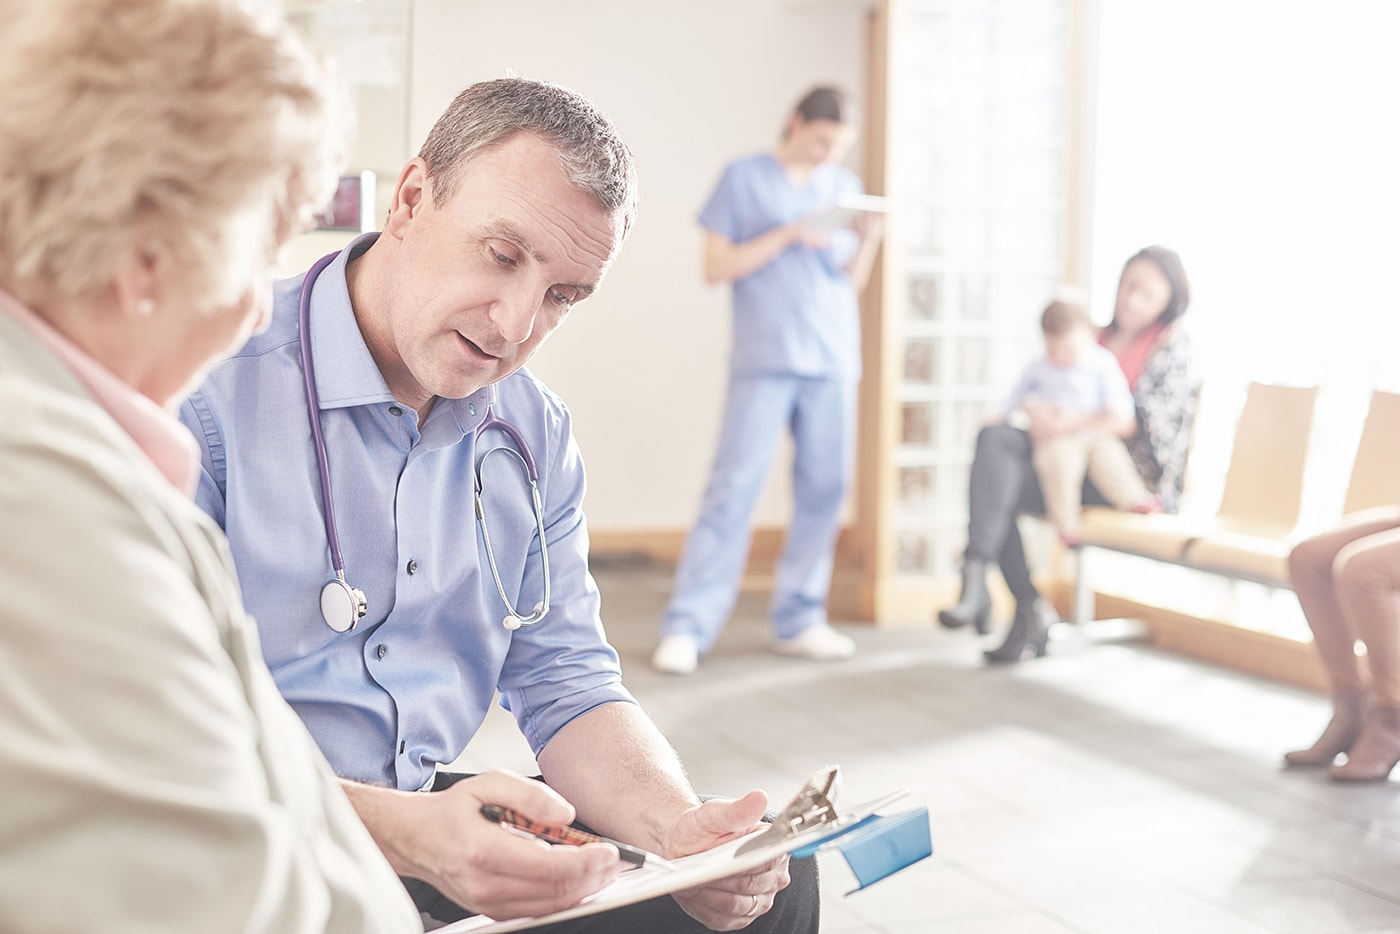 Can Medical Bills Hurt Your Credit? article image.